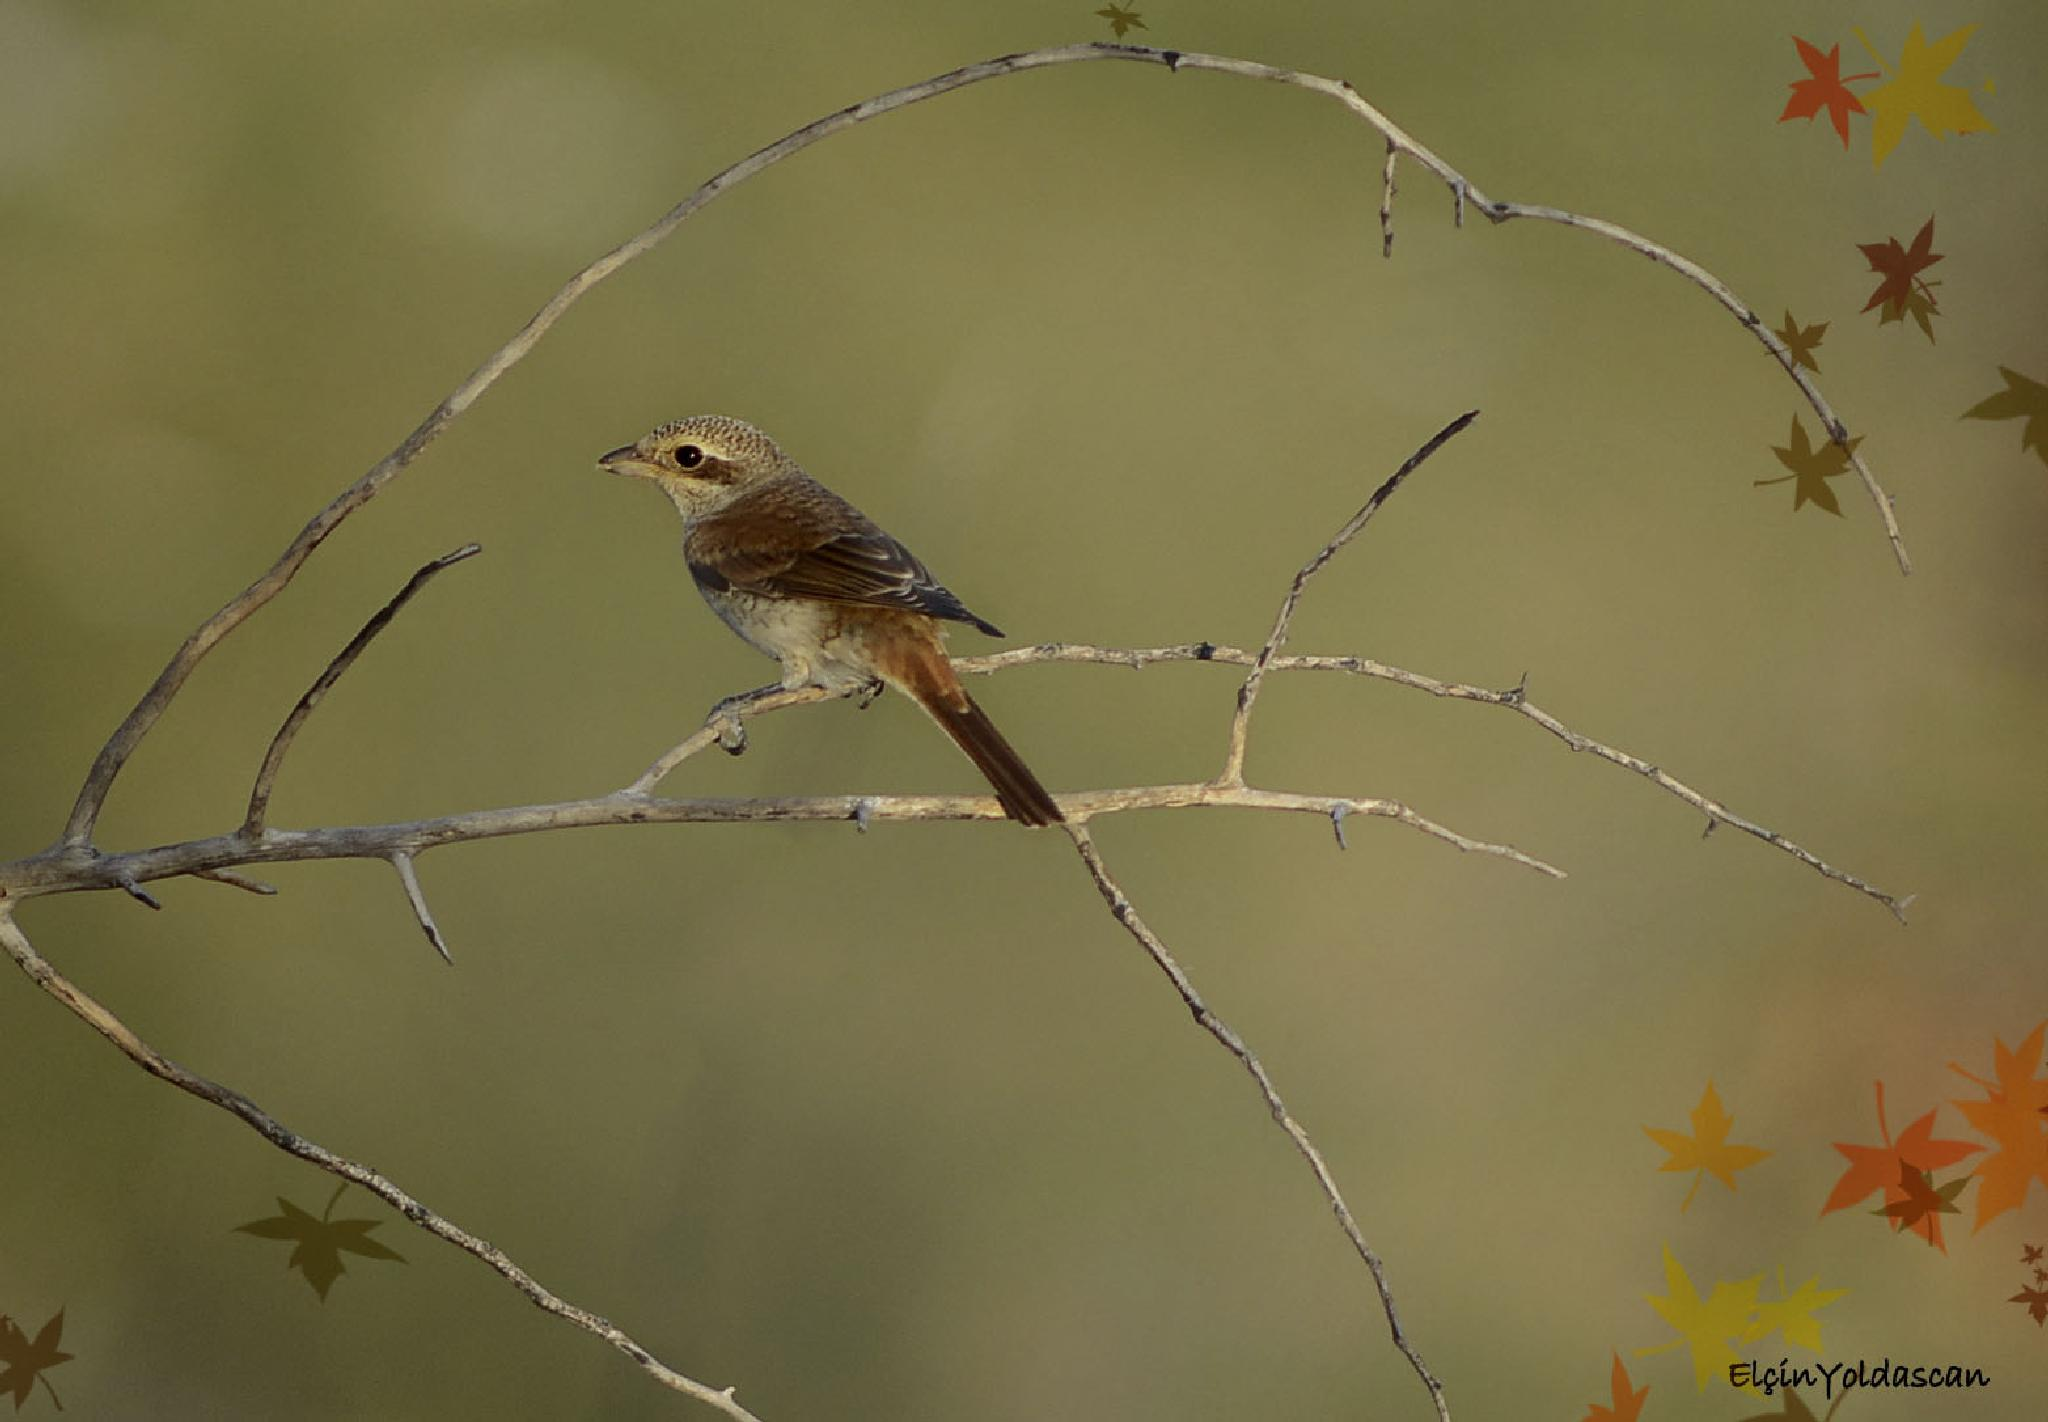 Red-backed Shrike by ElcinYoldascan